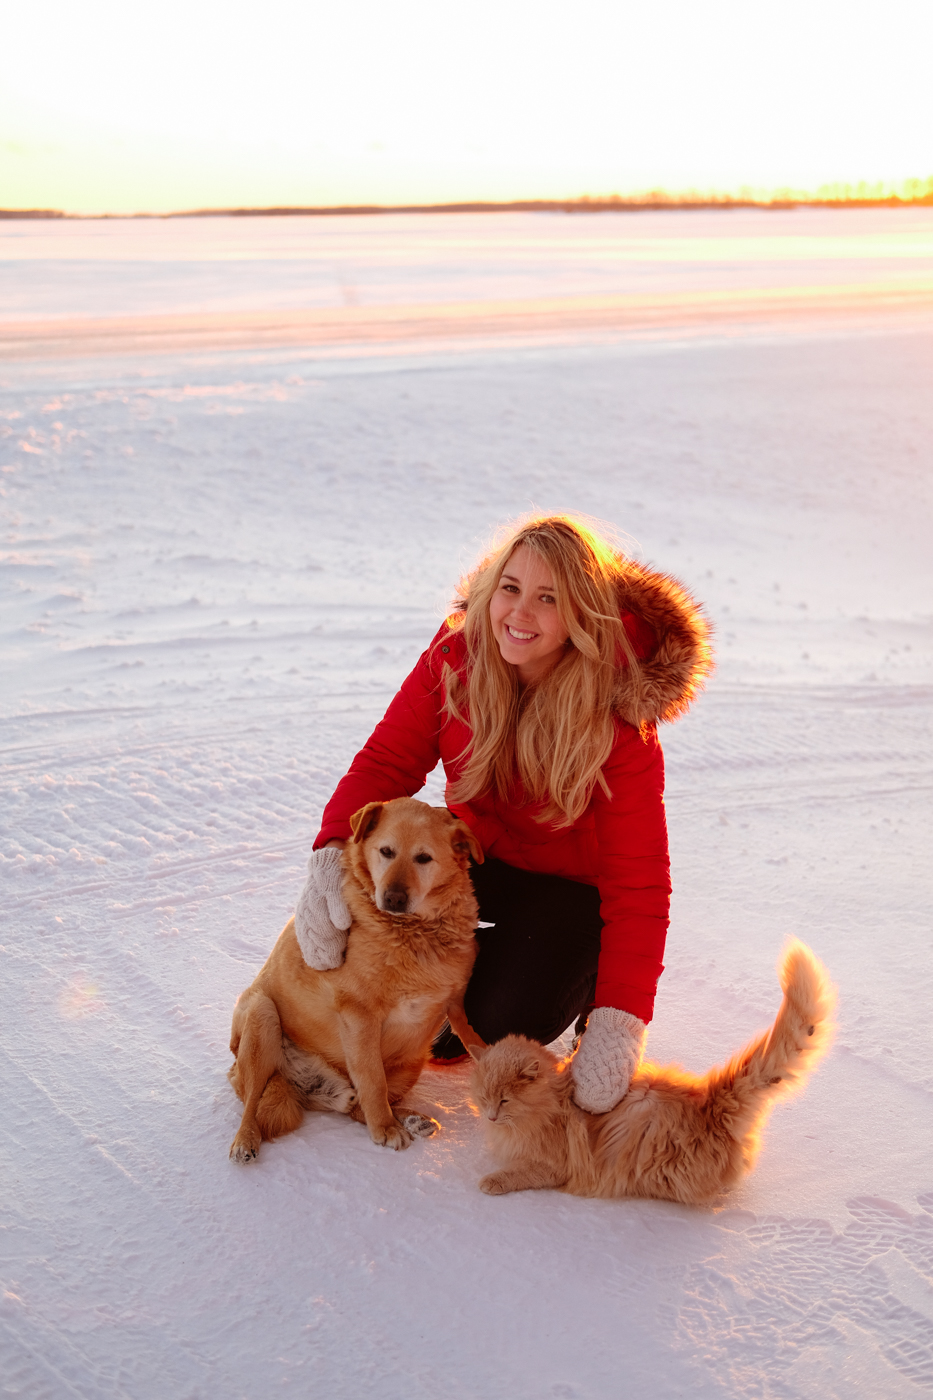 Debora Dahl wearing a red coat in the snow with the sunset behind her with a dog and a cat